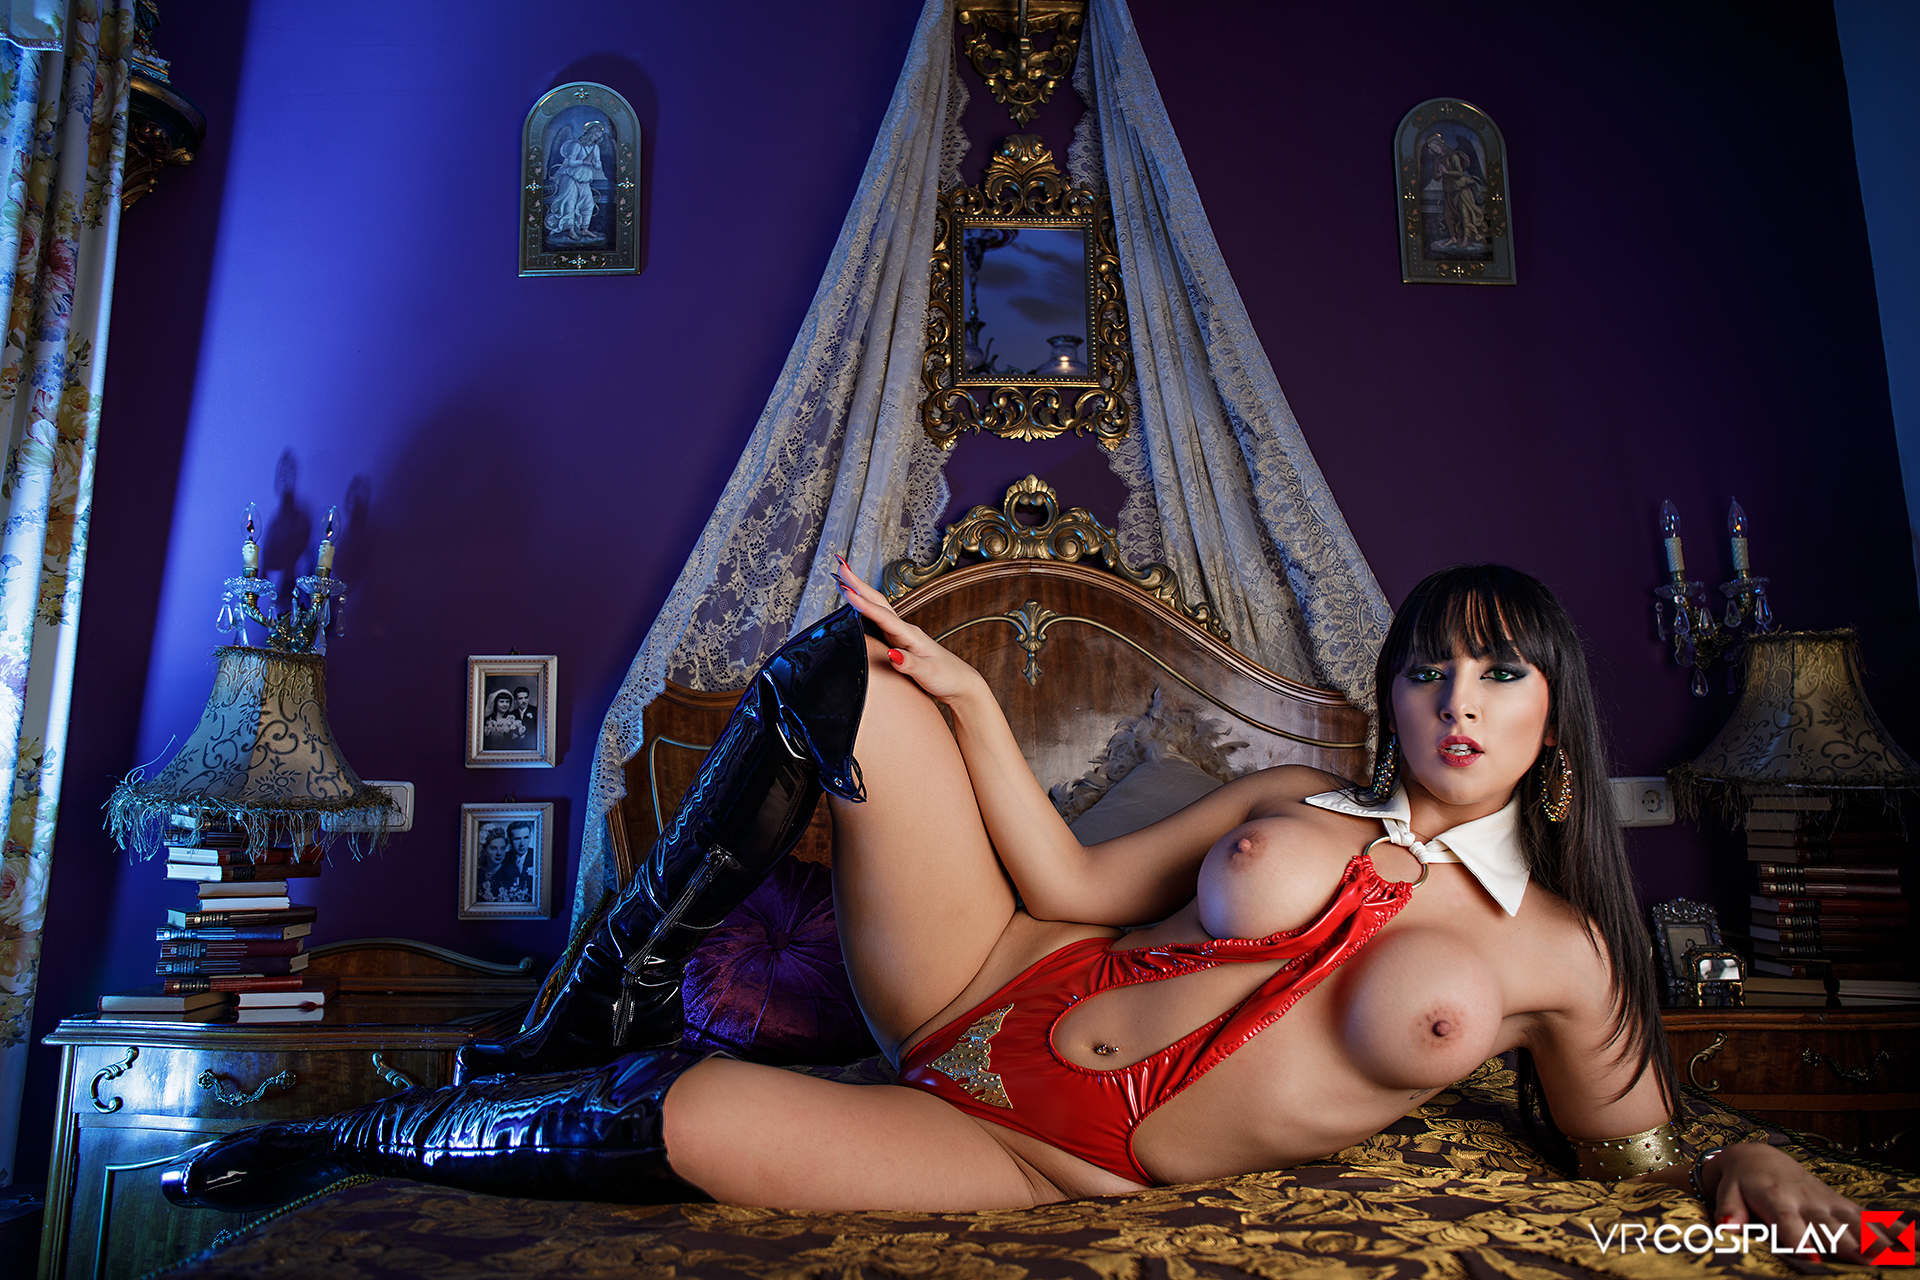 Red october trailer full version on my web site xxx - 4 3